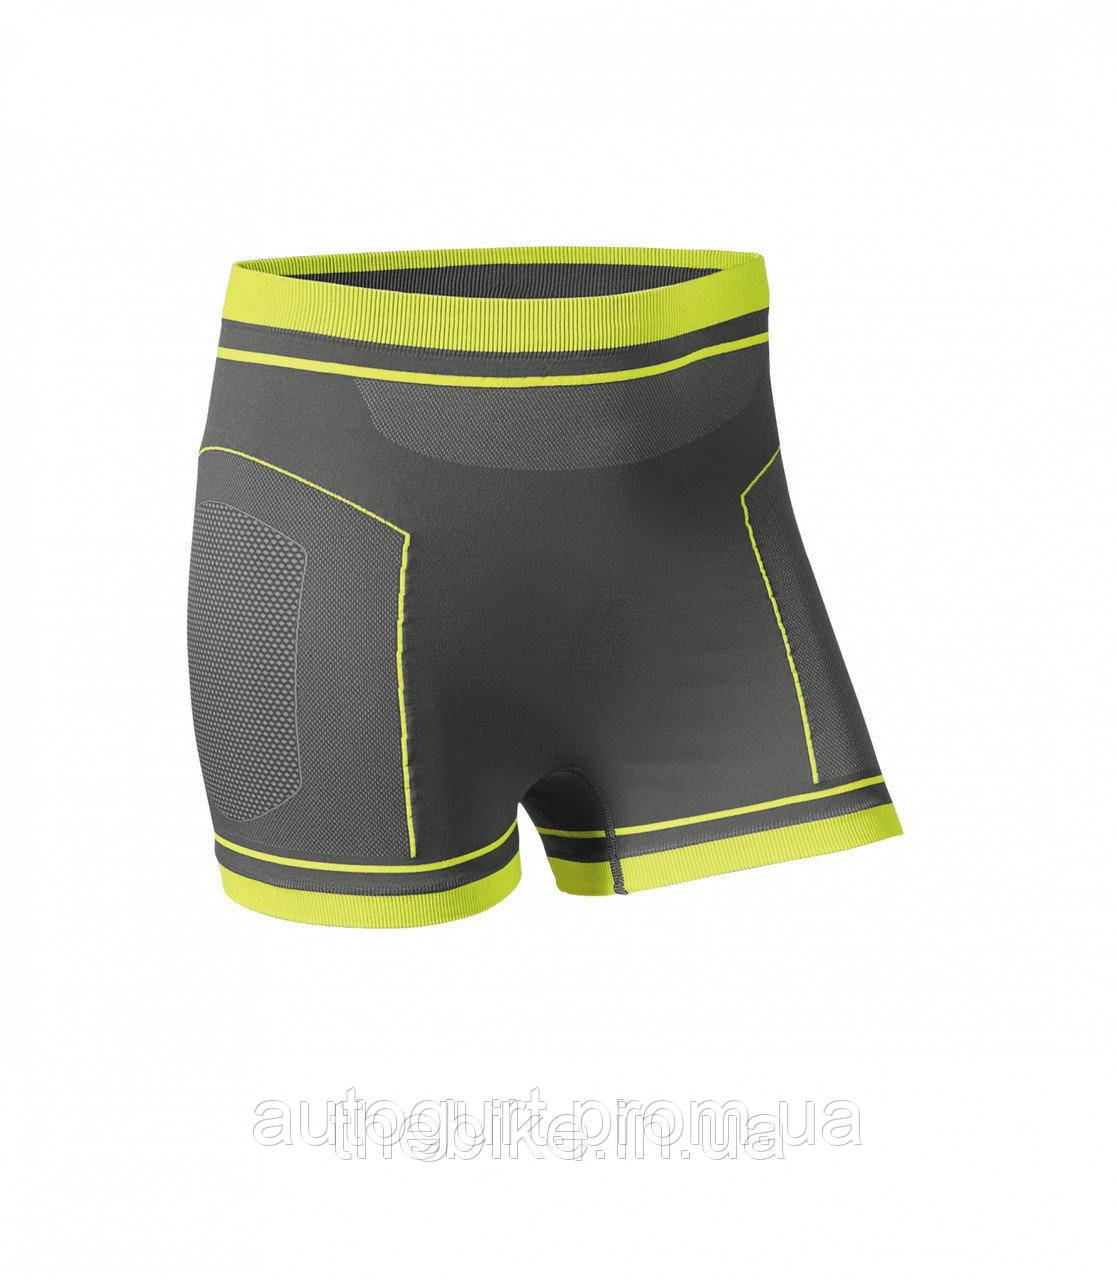 Спортивные шорты BMW Motorrad Summer Functional Undergarments Unisex Shorts Gray